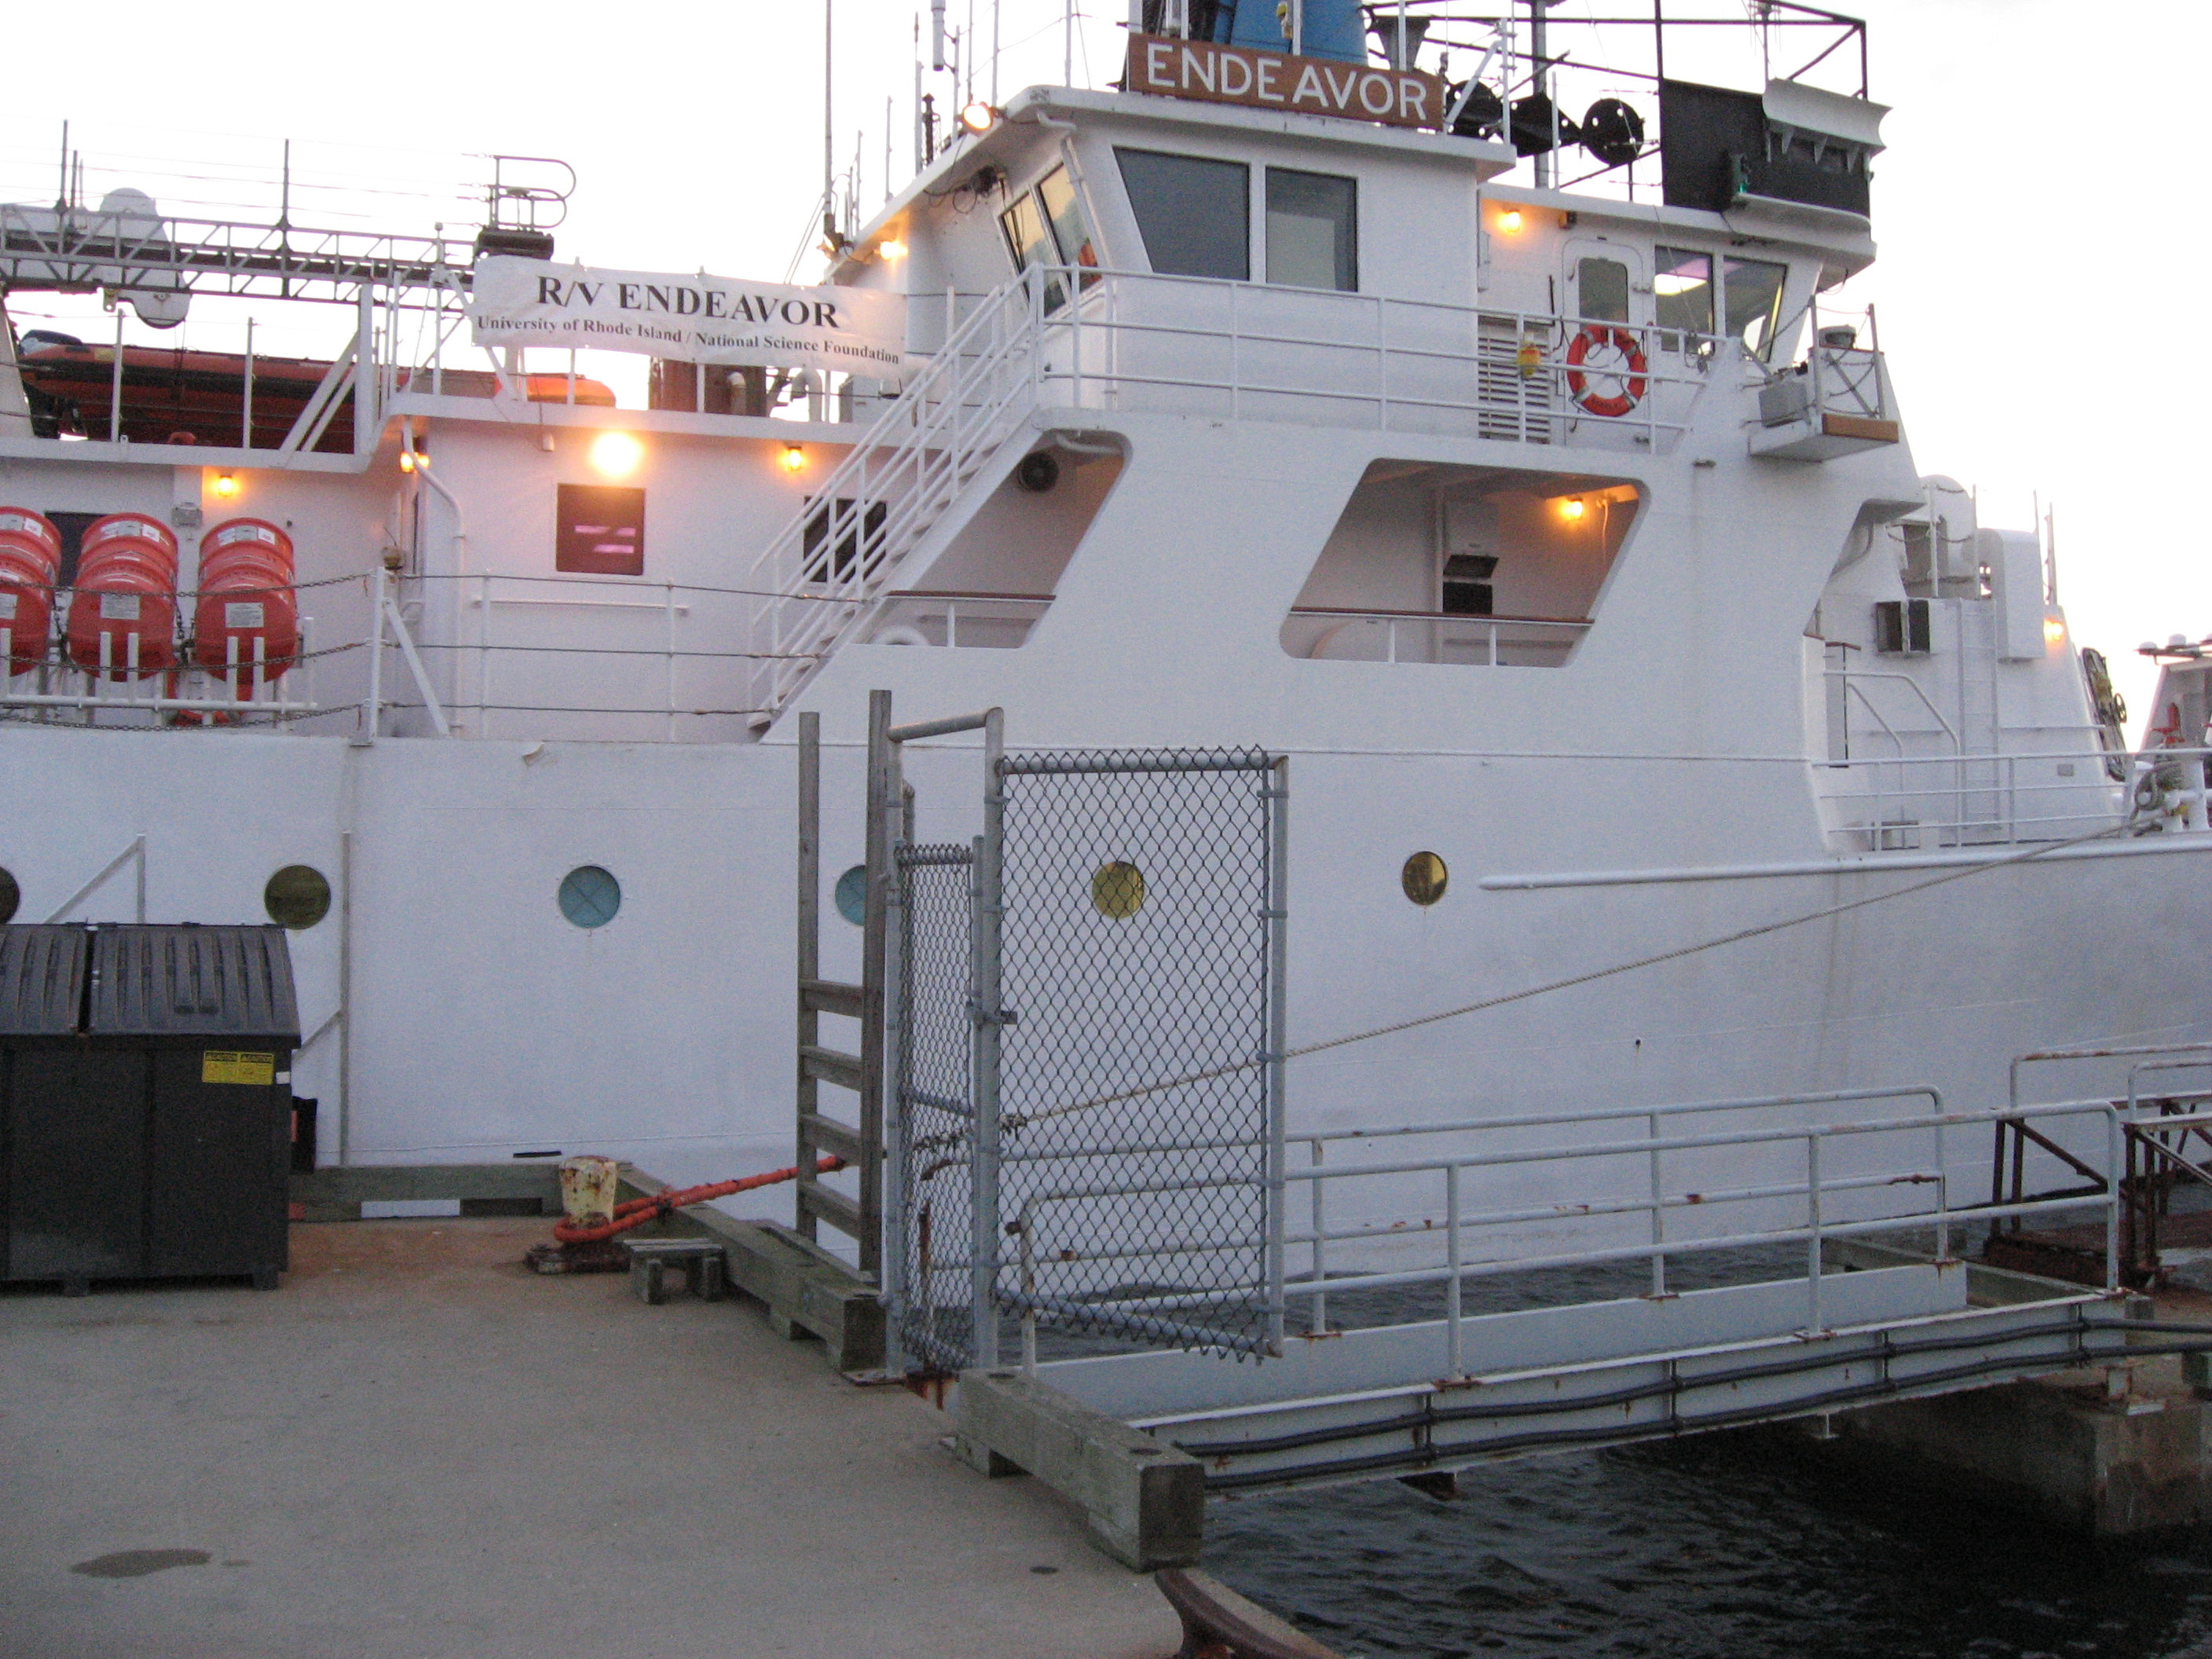 View of deployment vessel at dawn